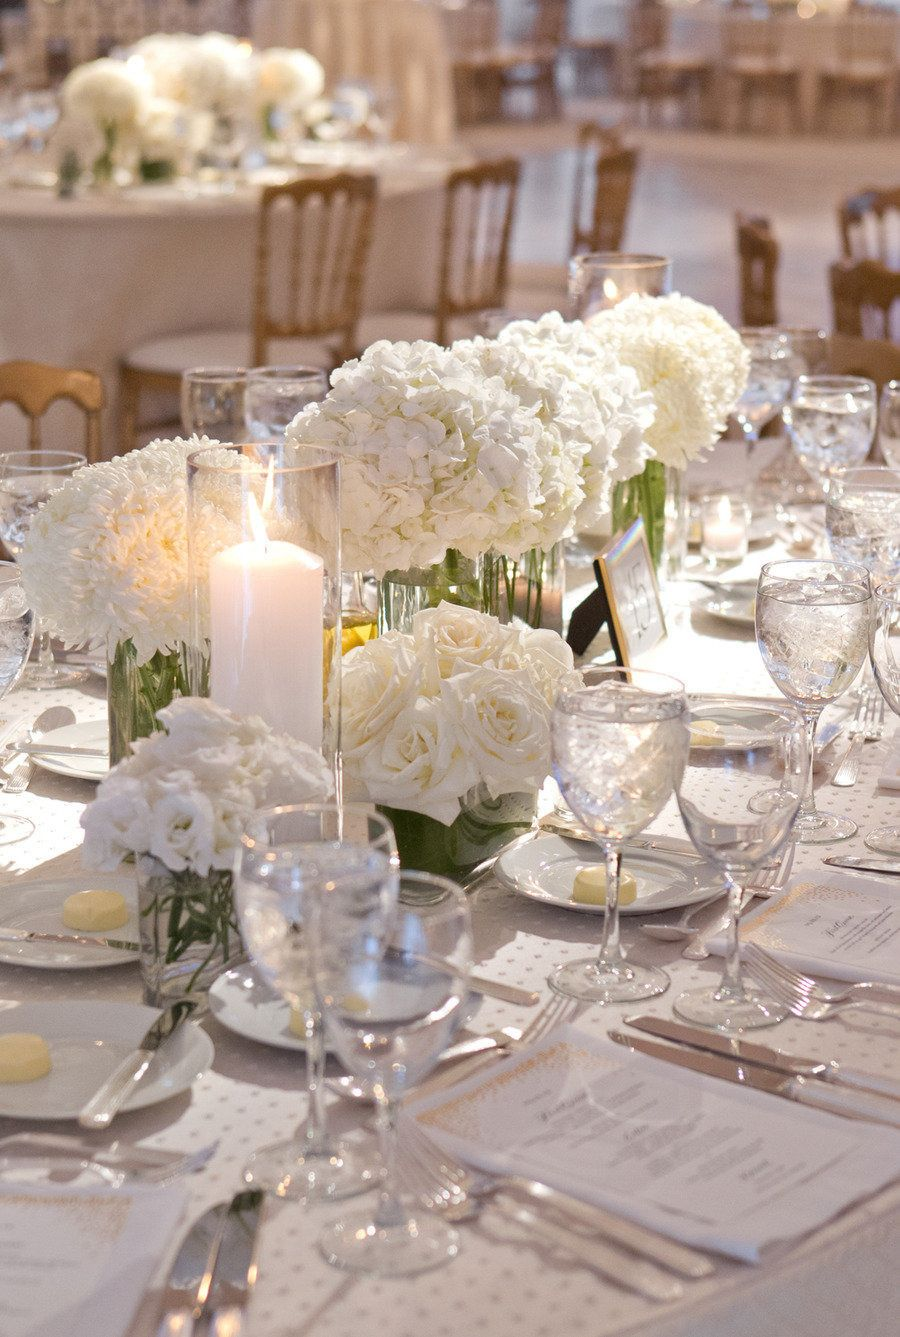 all white. candles, flowers, table, plates Hydrangea